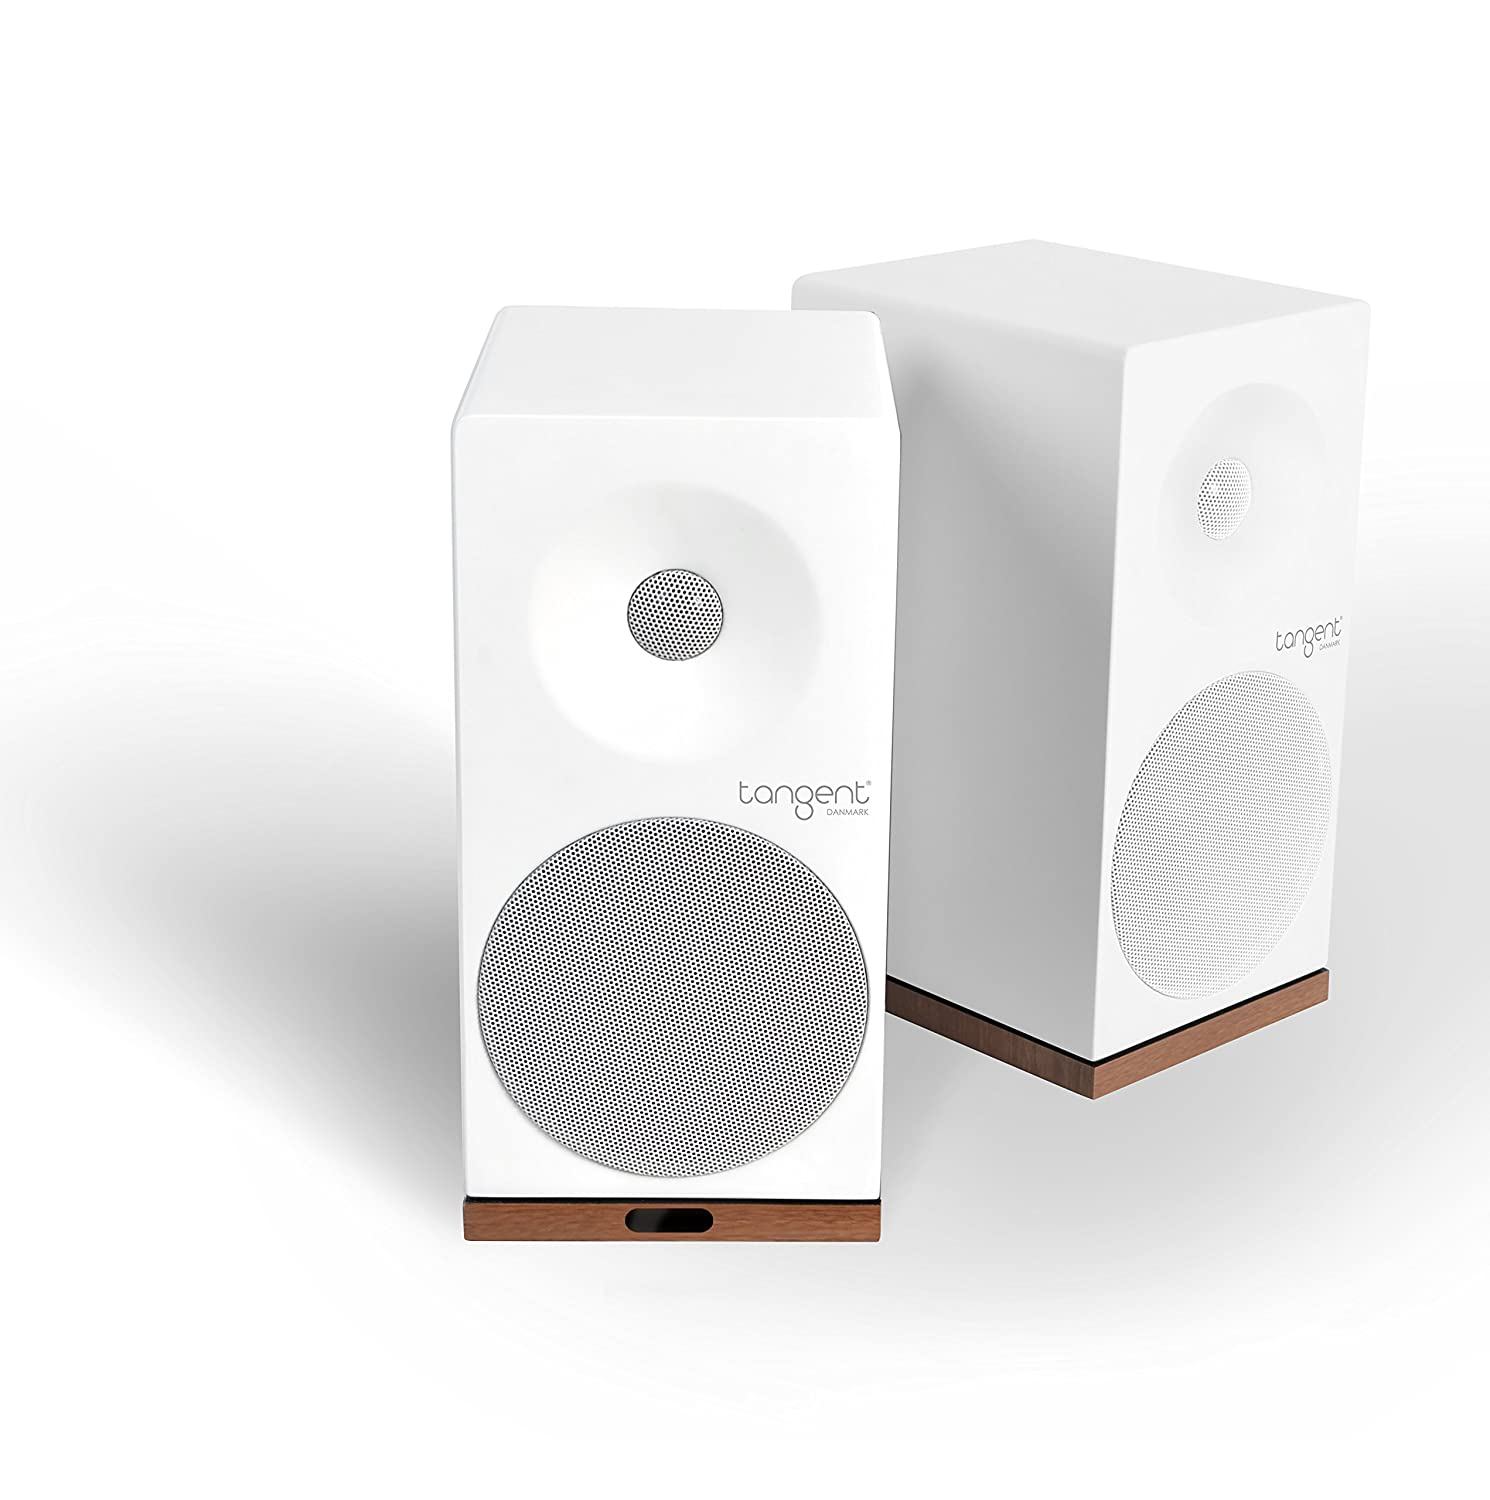 Tangent Spectrum X5BT Phono 50W Blanco Altavoz - Altavoces (De 2 vías, Inalámbrico y alámbrico, 3.5mm/Bluetooth, 50 W, 60-20000 Hz, Blanco)